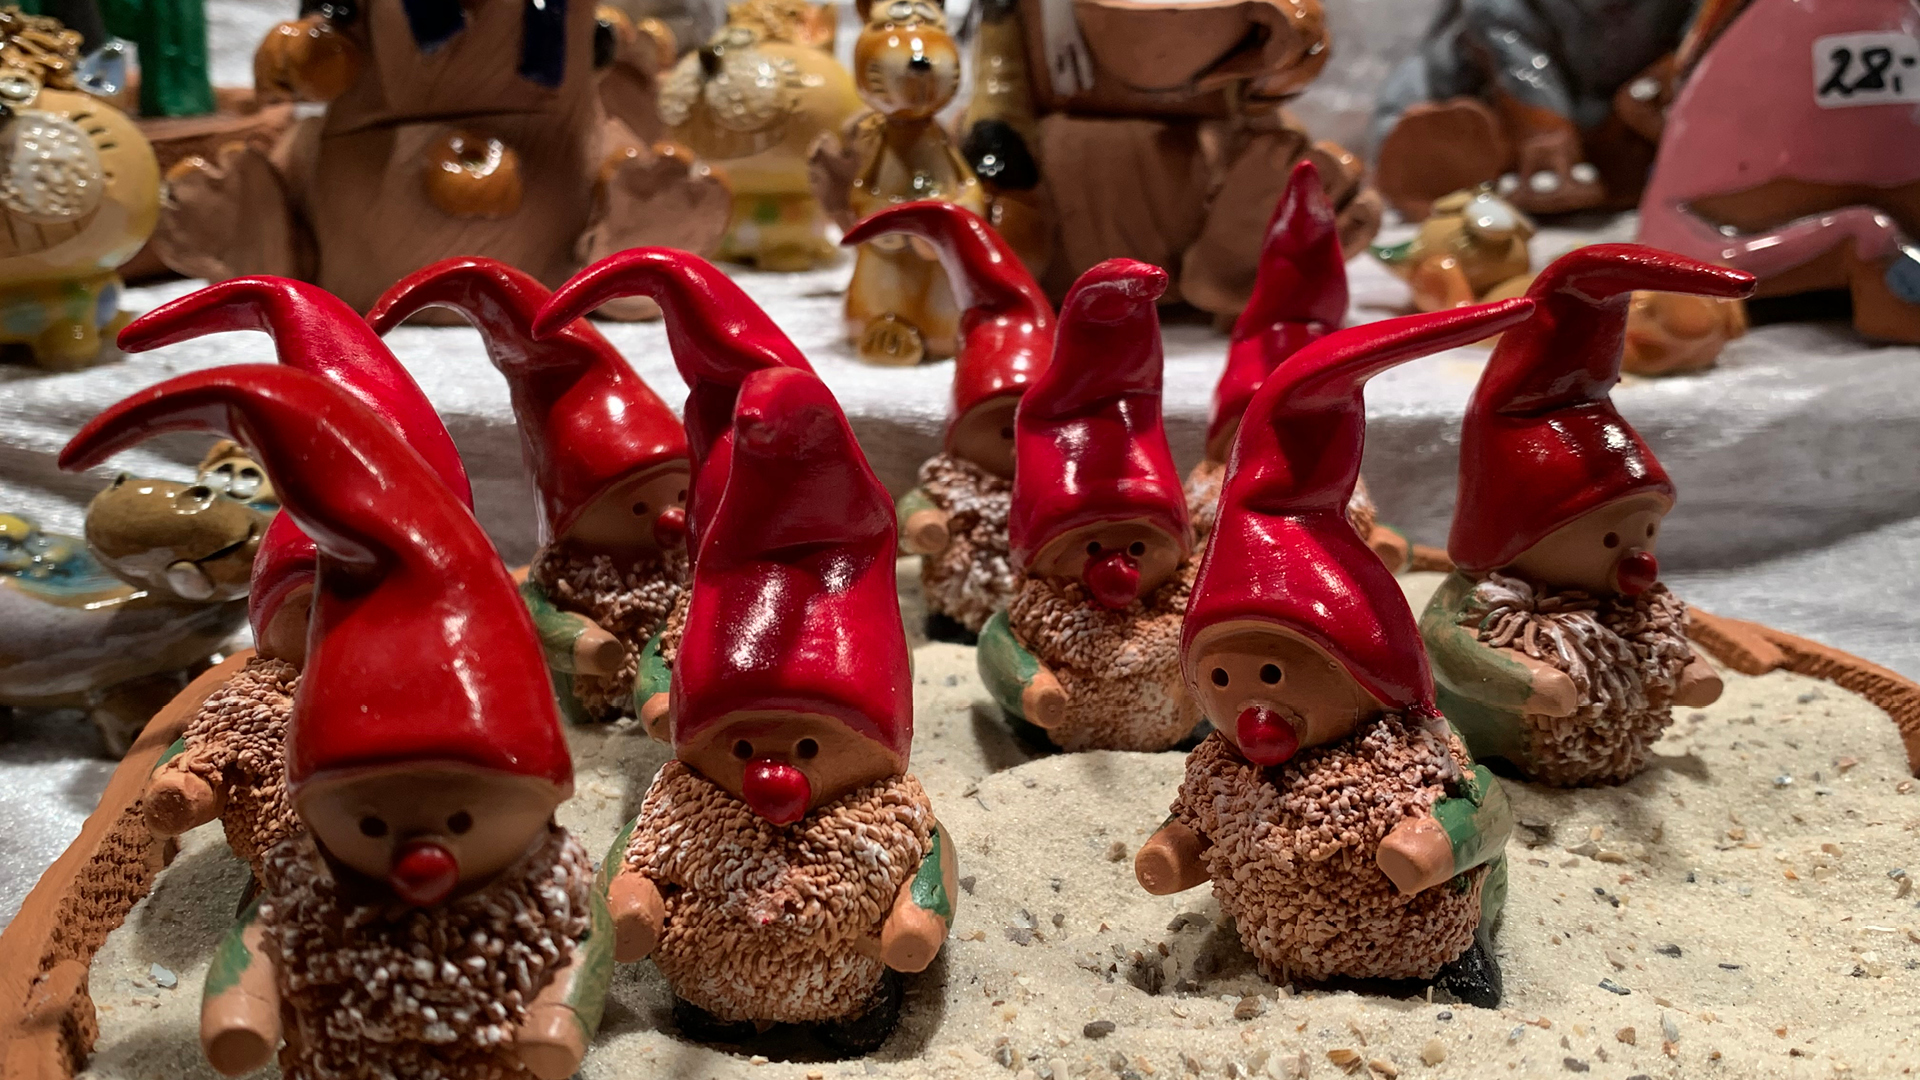 Christmas ornaments at a market in Wiesbaden | Christmas Market | Wiesbaden | STIRworld